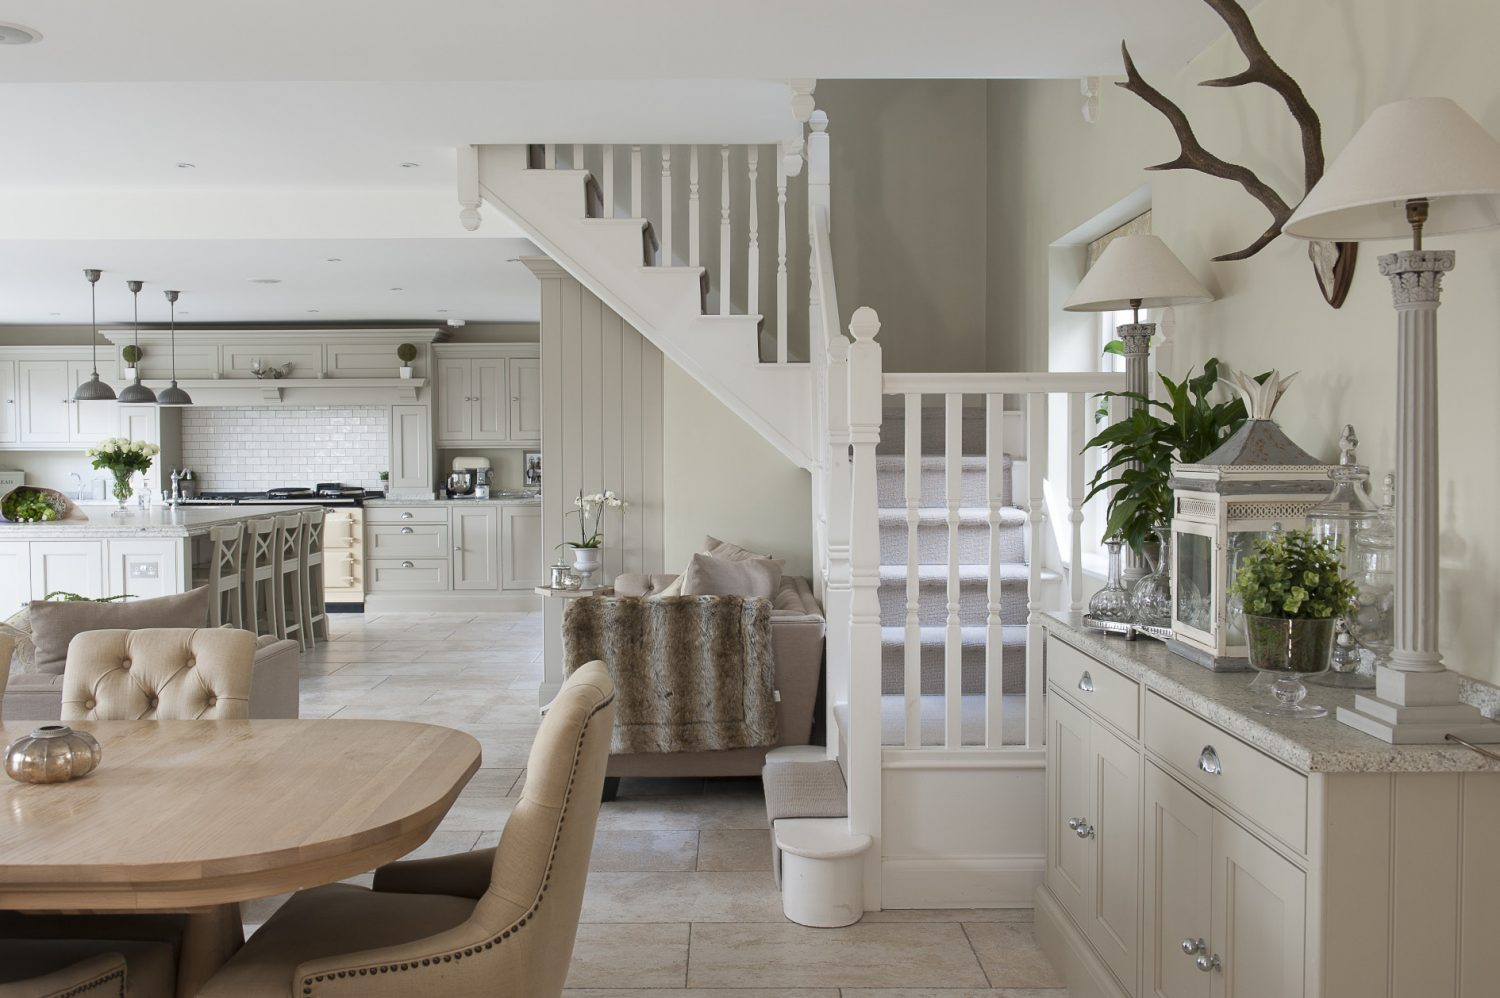 Although the room is huge, it's cleverly divided up into distinct areas, so that beyond the working part, a pair of linen-covered sofas provide a sociable spot for family and friends to lounge and chat while food is being prepared